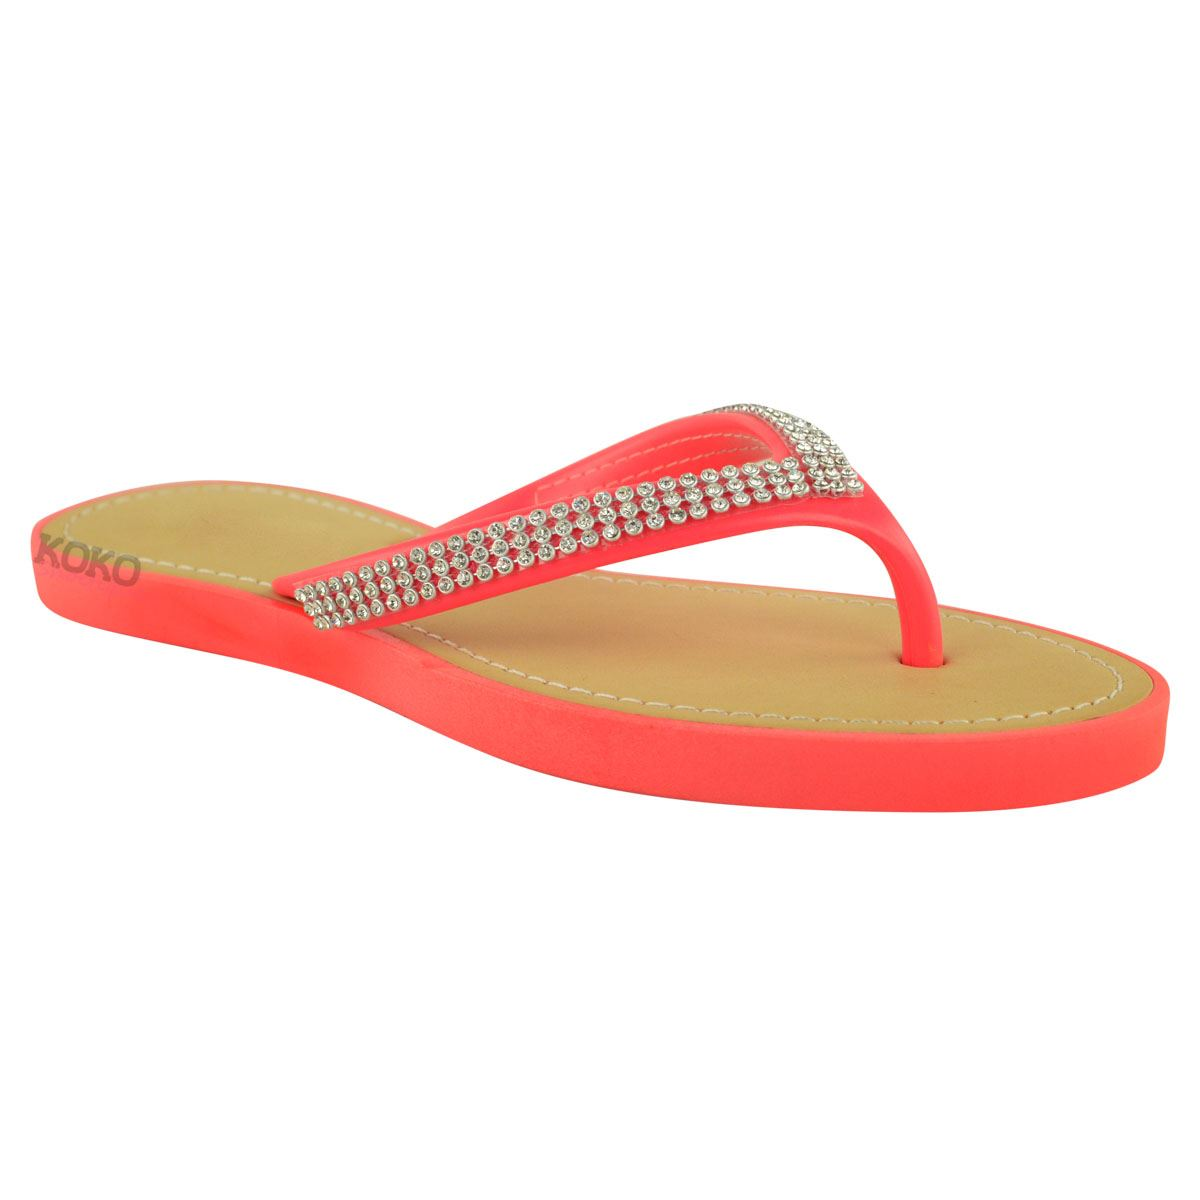 NEW-JELLY-SANDALS-WOMENS-LADIES-DIAMANTE-SUMMER-HOLIDAY-COMFORTS-FLIP-FLOPS-SIZE thumbnail 39